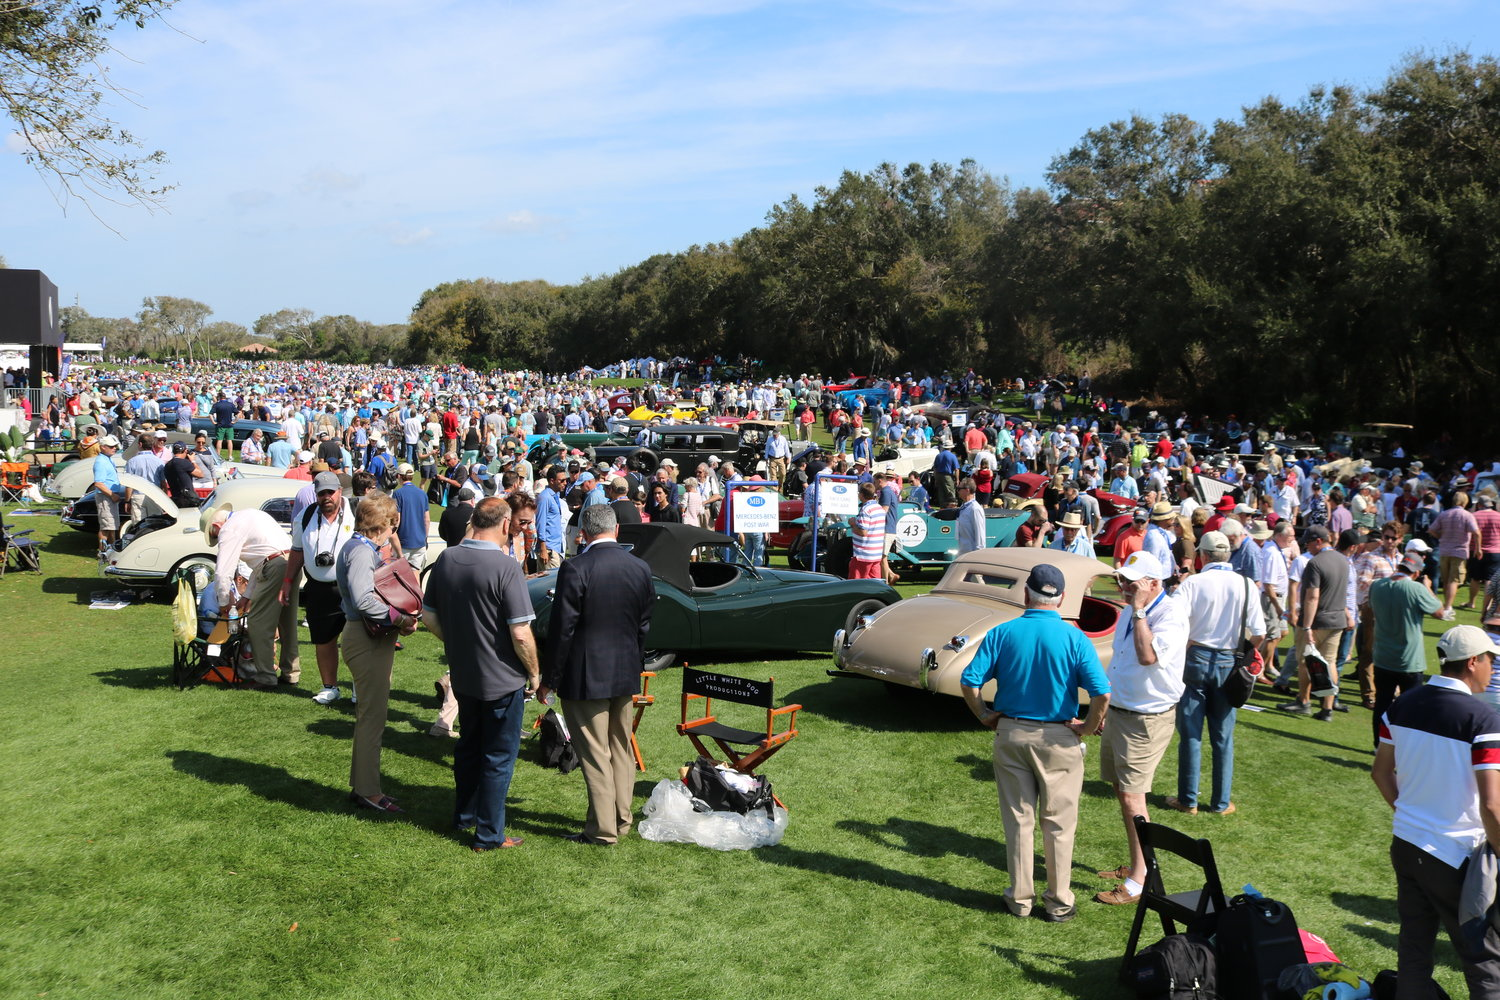 Thousands of car enthusiasts walk the grounds of the Golf Club of Amelia Island for the Concours.